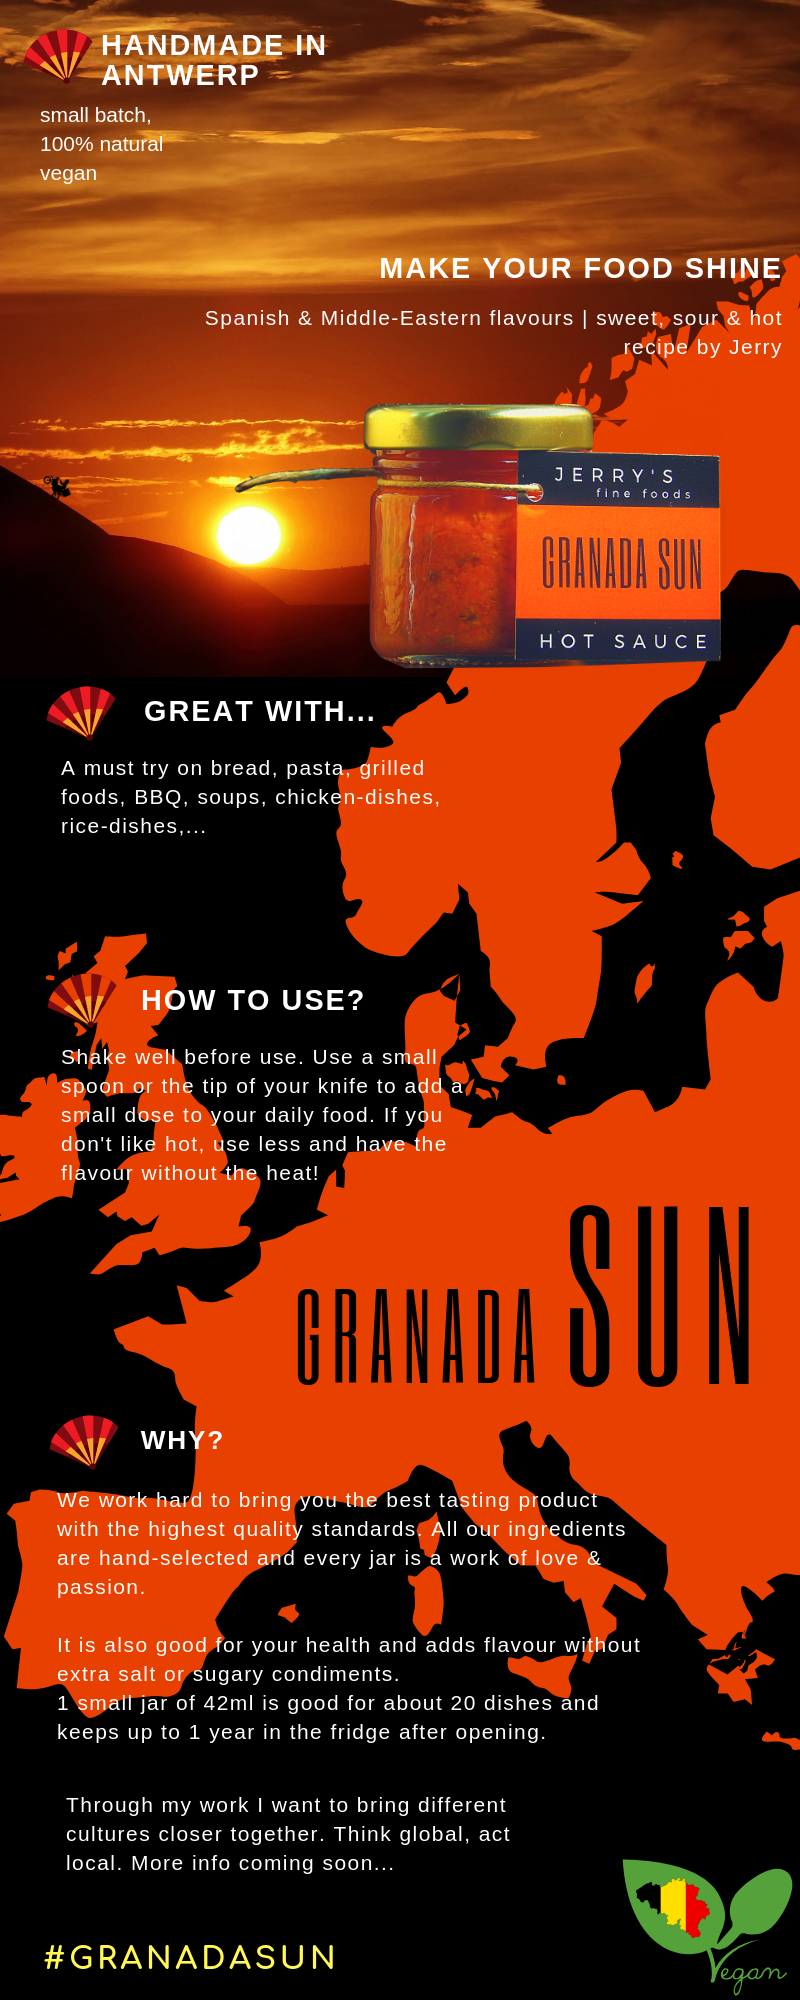 infographic about our granada sun hot sauce, spanish flavours with middle eastern flavours work very well toghether in this beautifully tasting hot sauce by jerrys fine foods